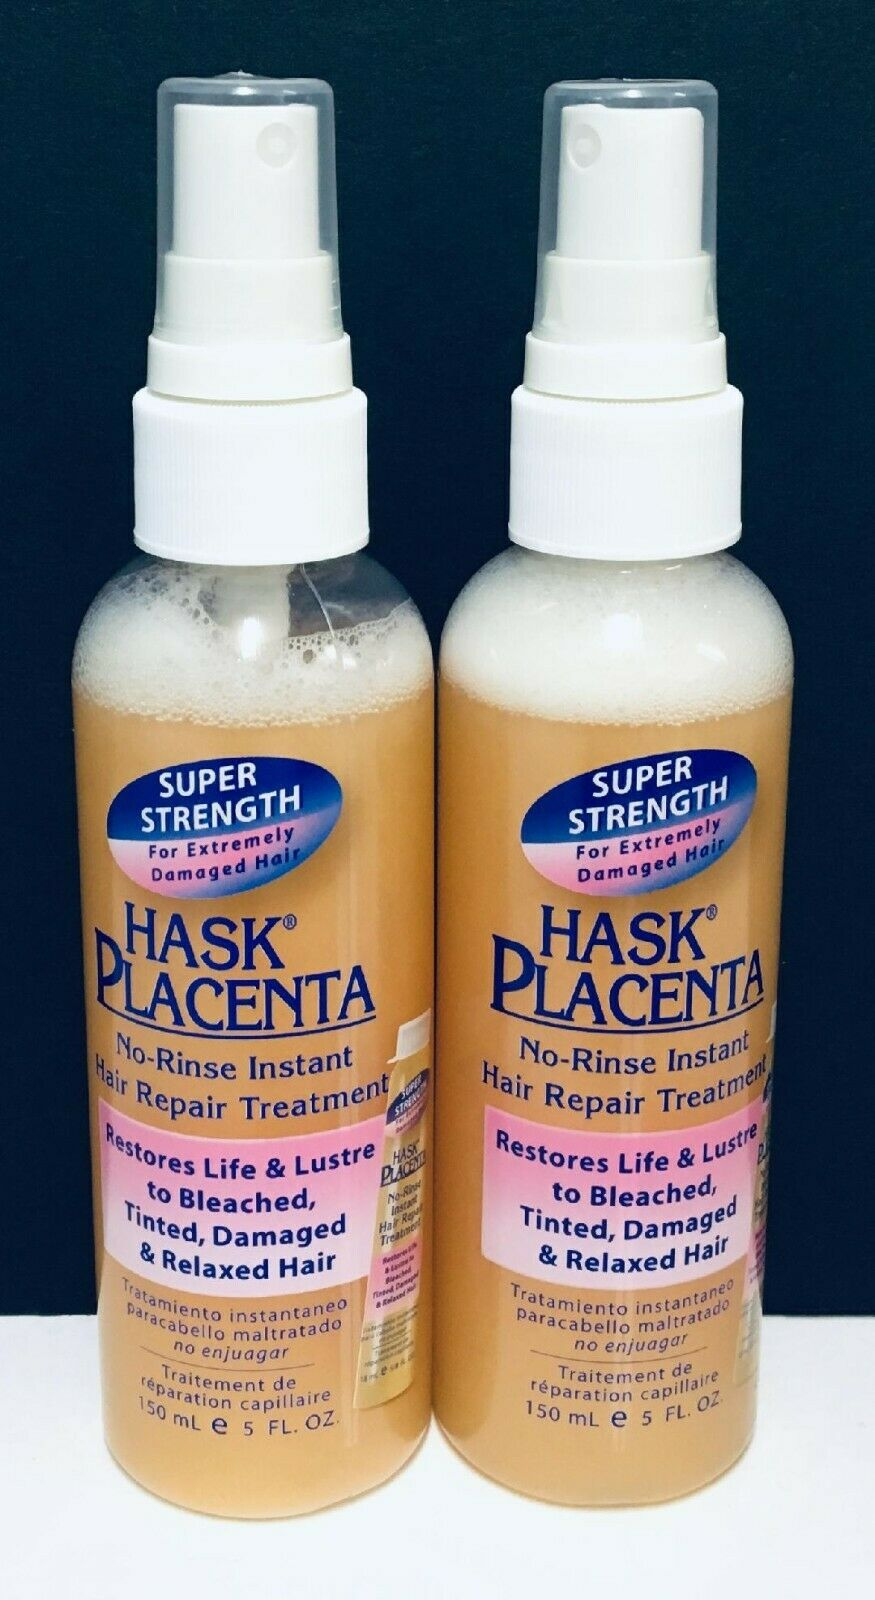 Hask Placenta No Rinse Instant Hair Repair Treatment Super Strength 2pack 5floz For Sale Online